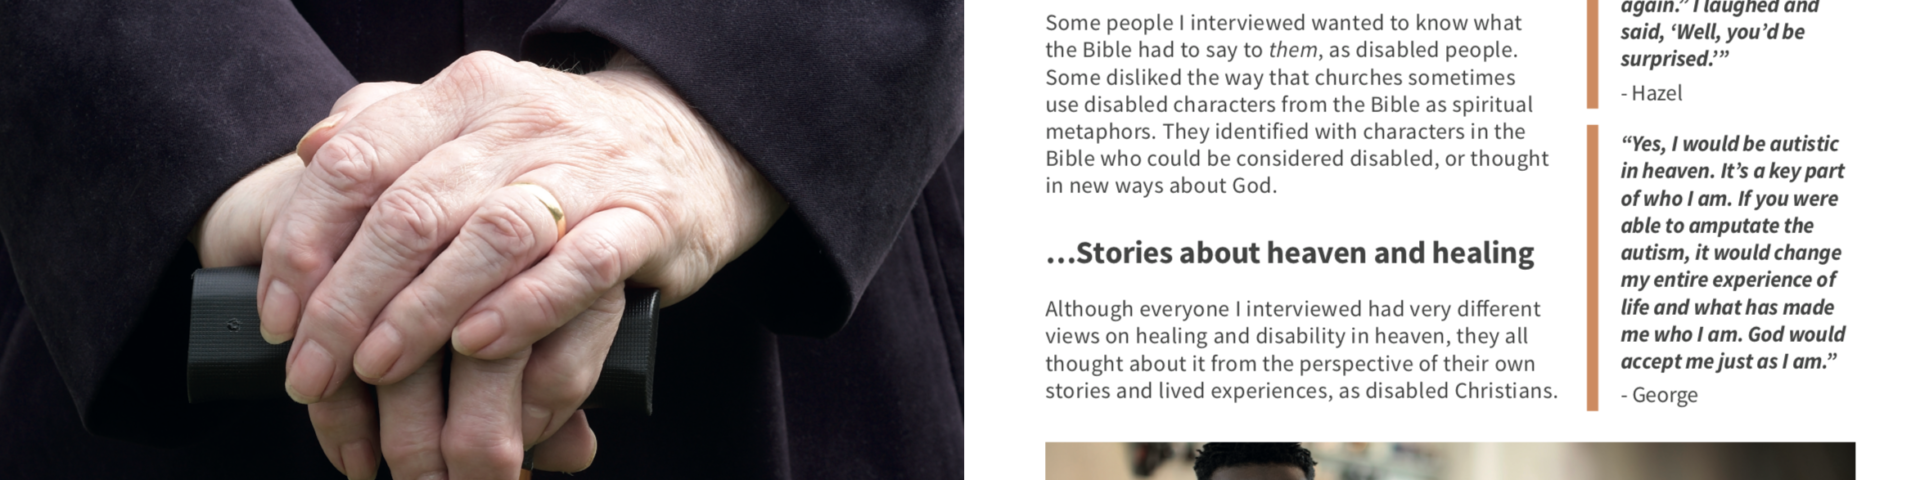 An image of pages from the research booklet, featuring an older person's hand and some text